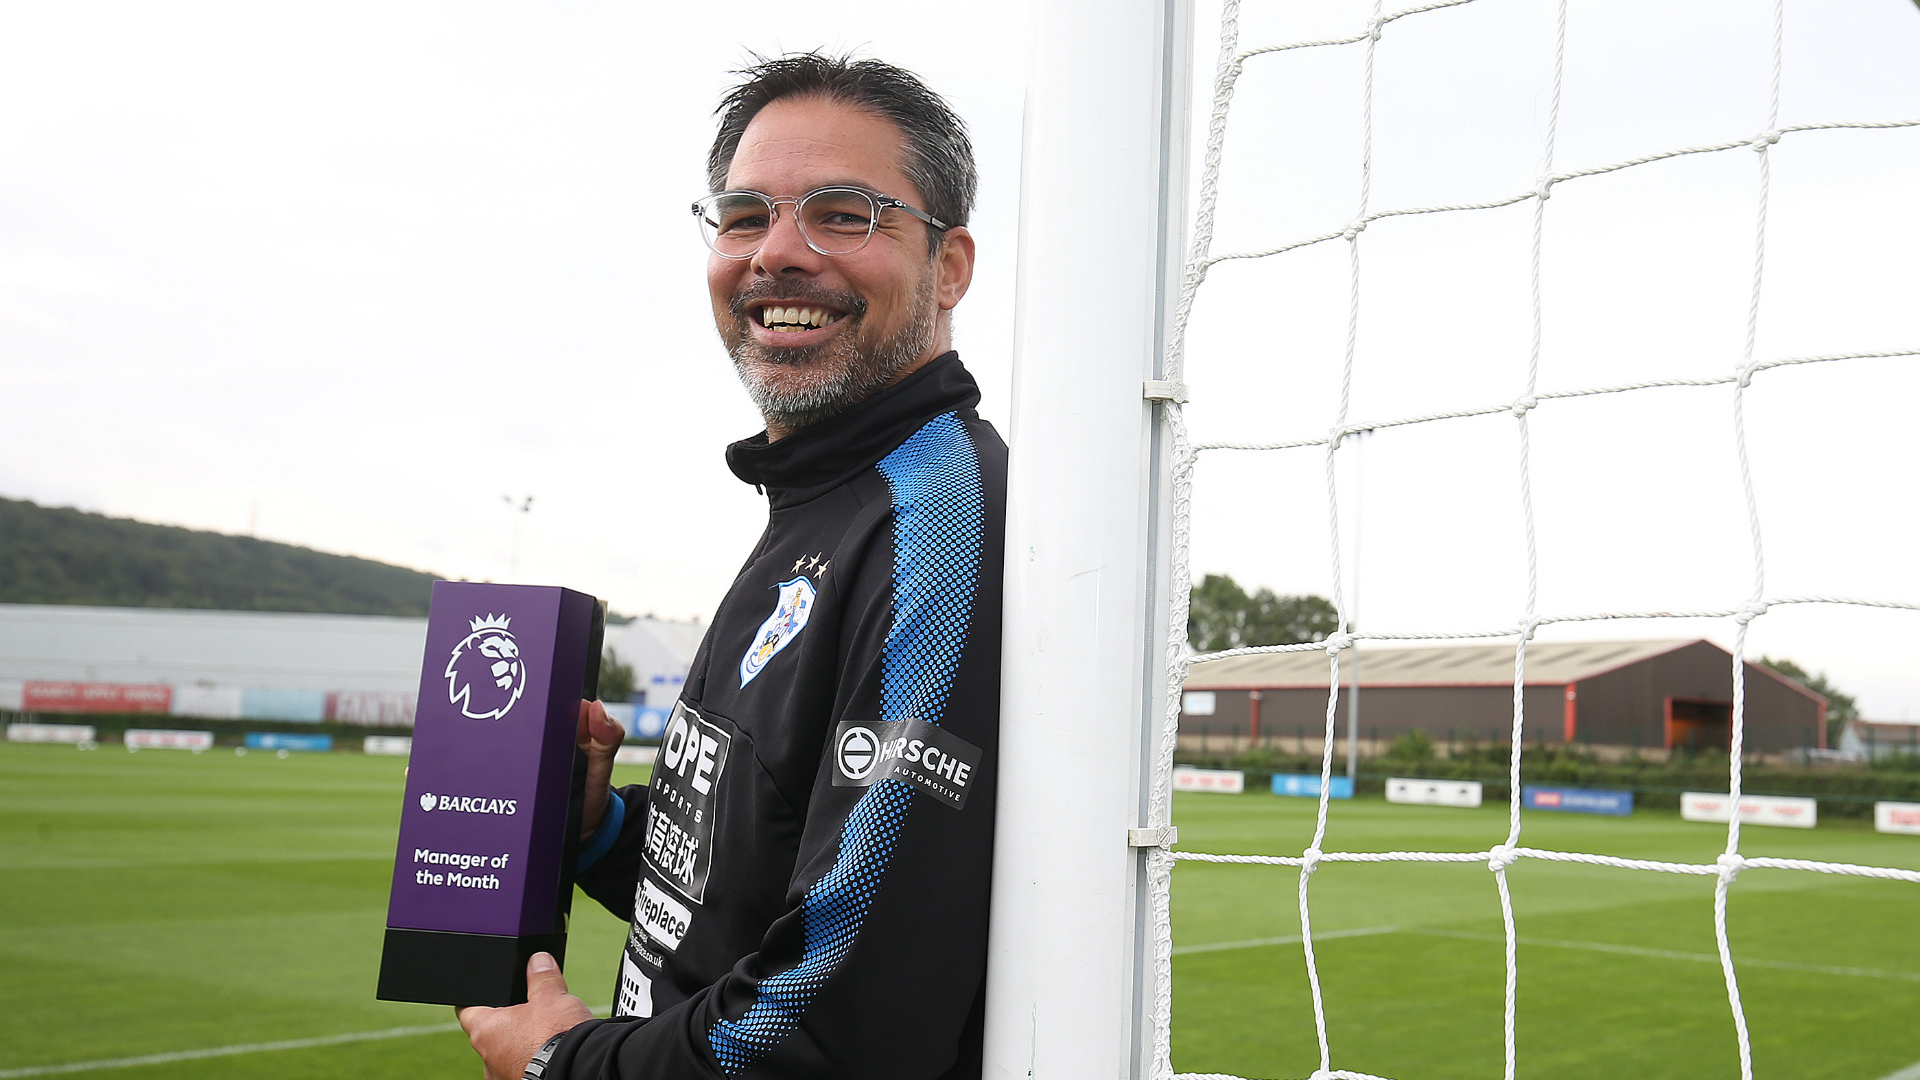 David Wagner Huddersfield Town Manager of the month